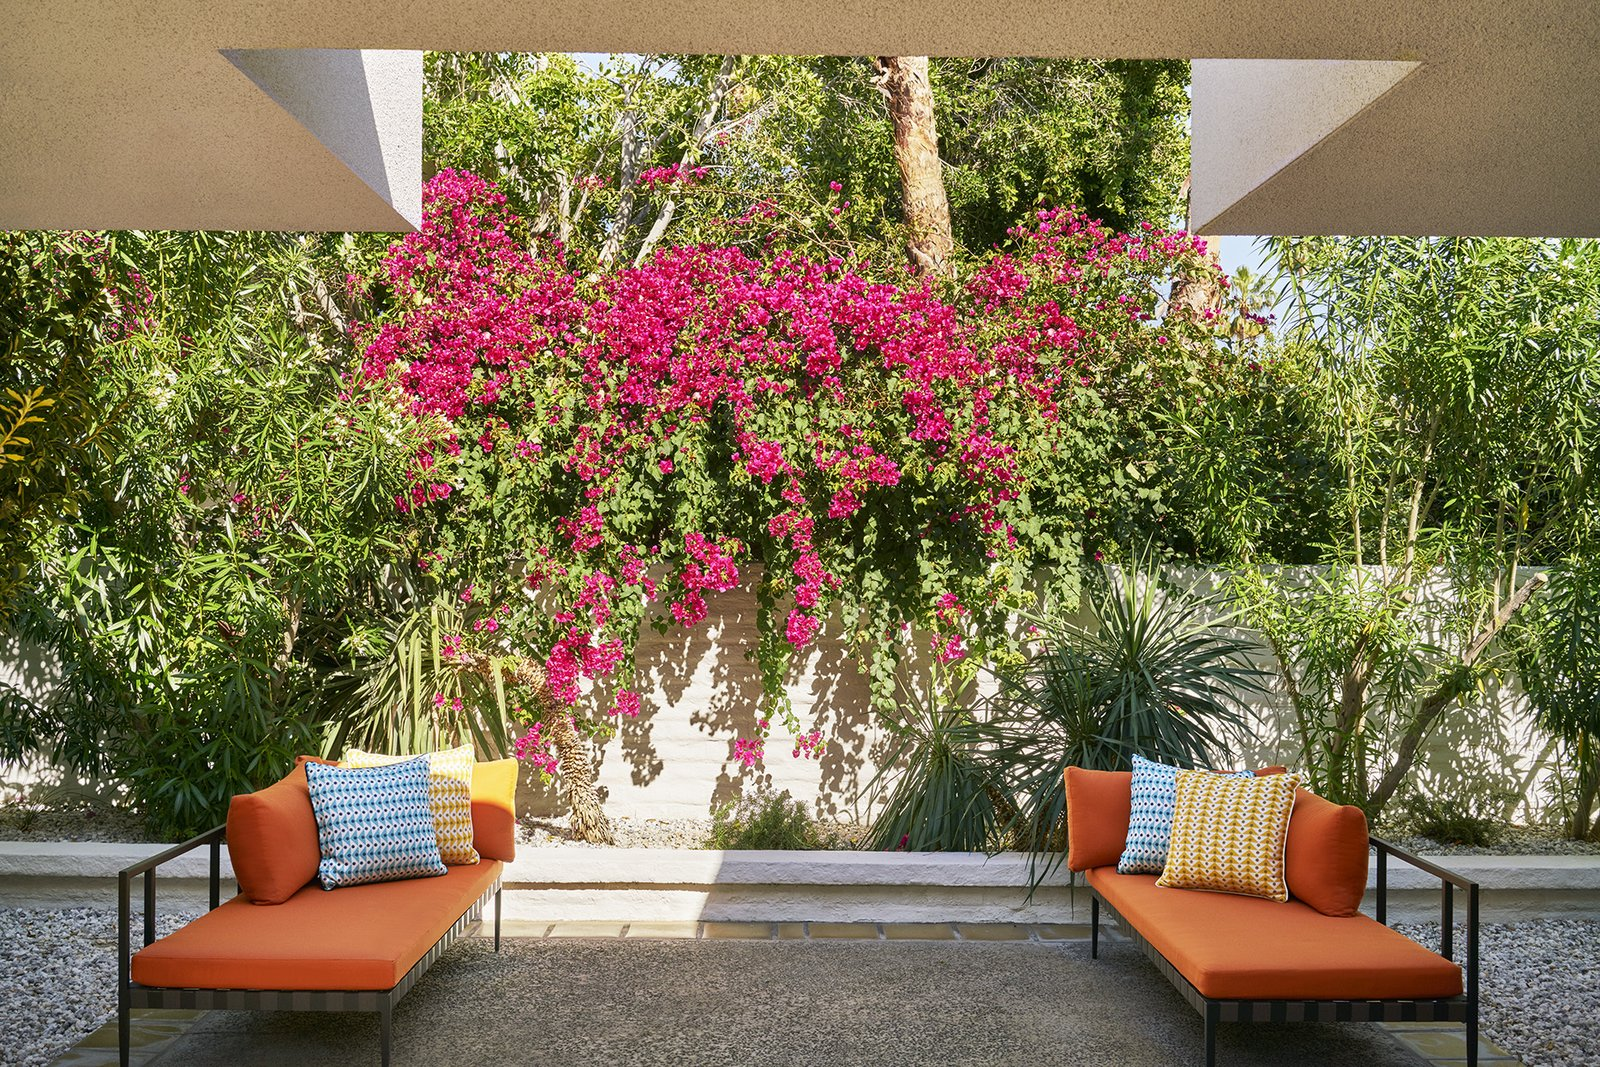 Lush, tropical landscapes designed by Judy Kameon blanket the Parker Palm Springs.